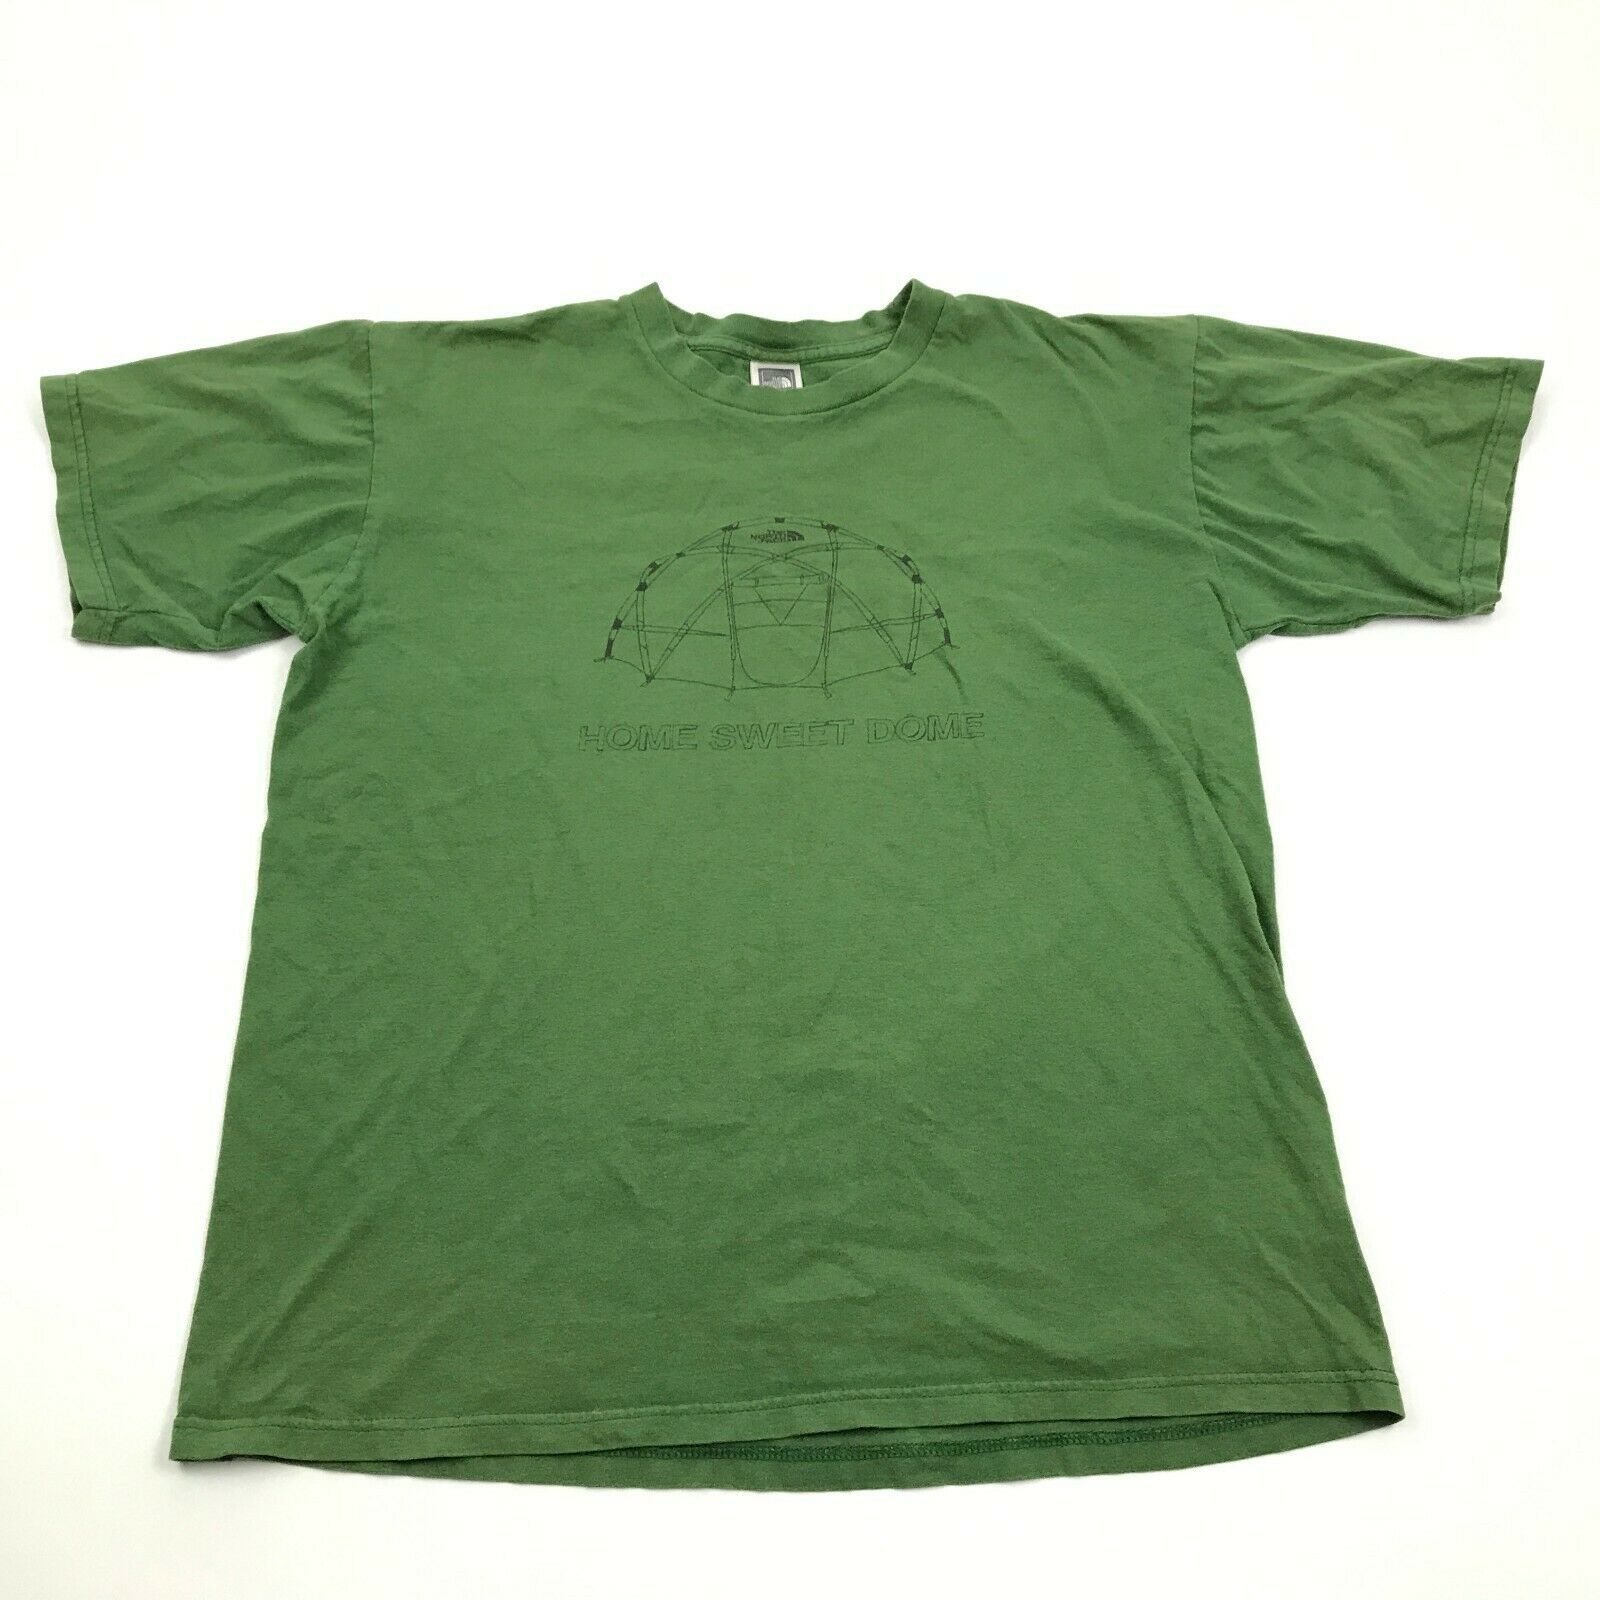 Primary image for The North Face Short Sleeve Shirt Size M Hiking Exploration Tee HOME SWEET DOME